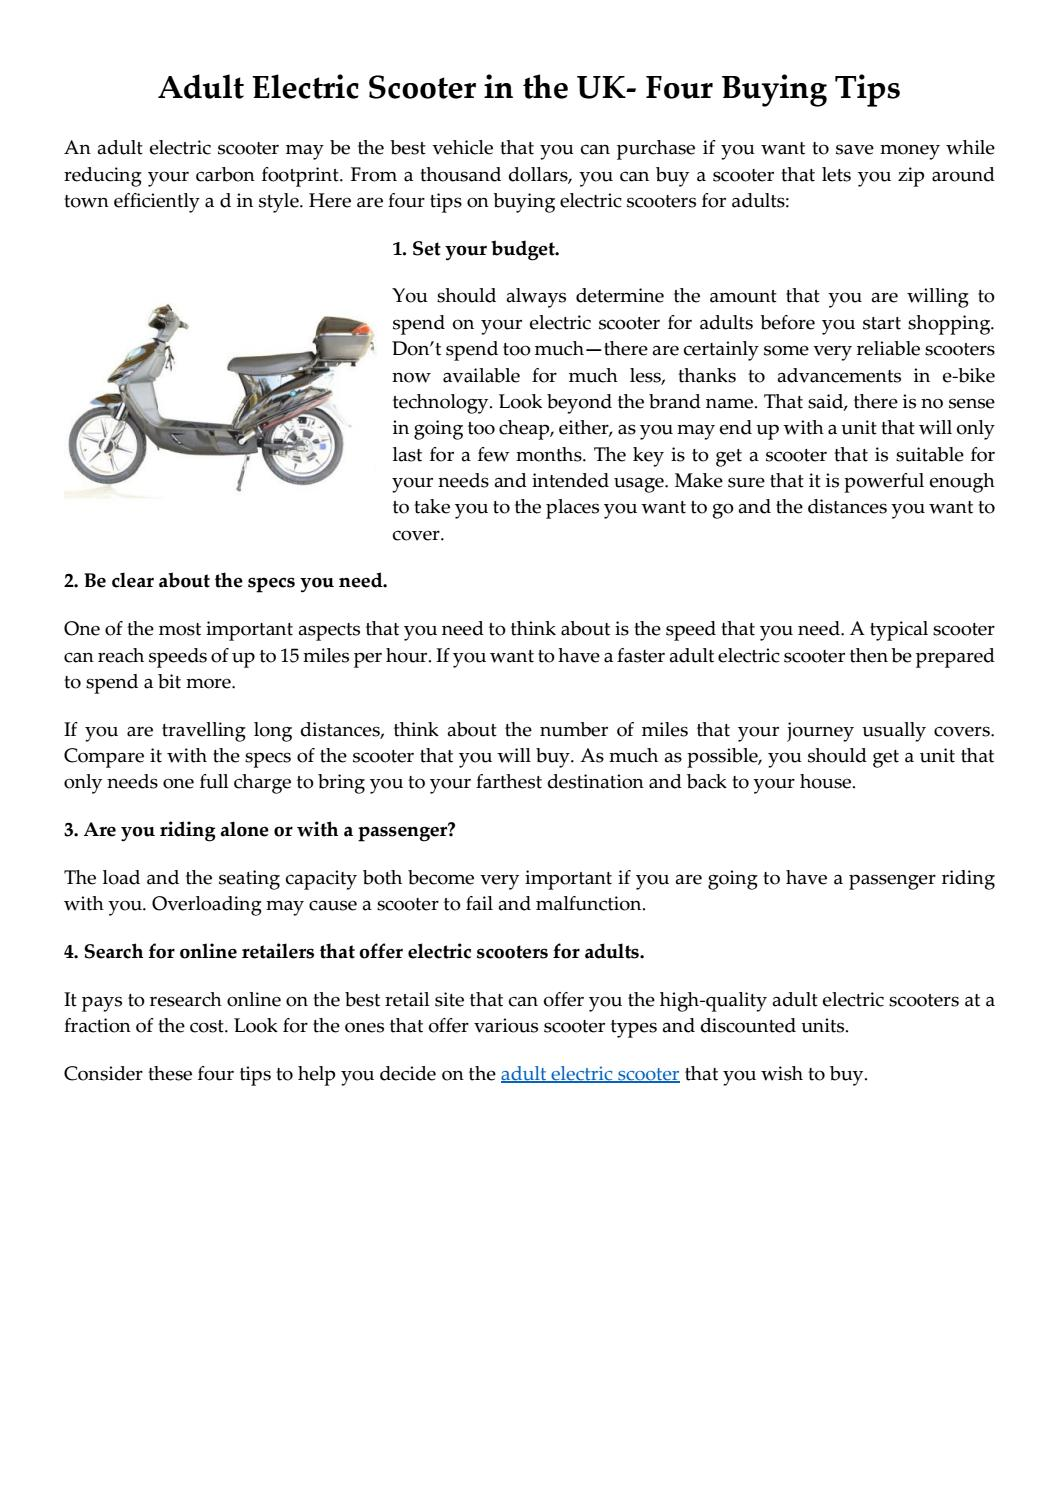 Adult Electric Scooter in the UK- Four Buying Tips by The